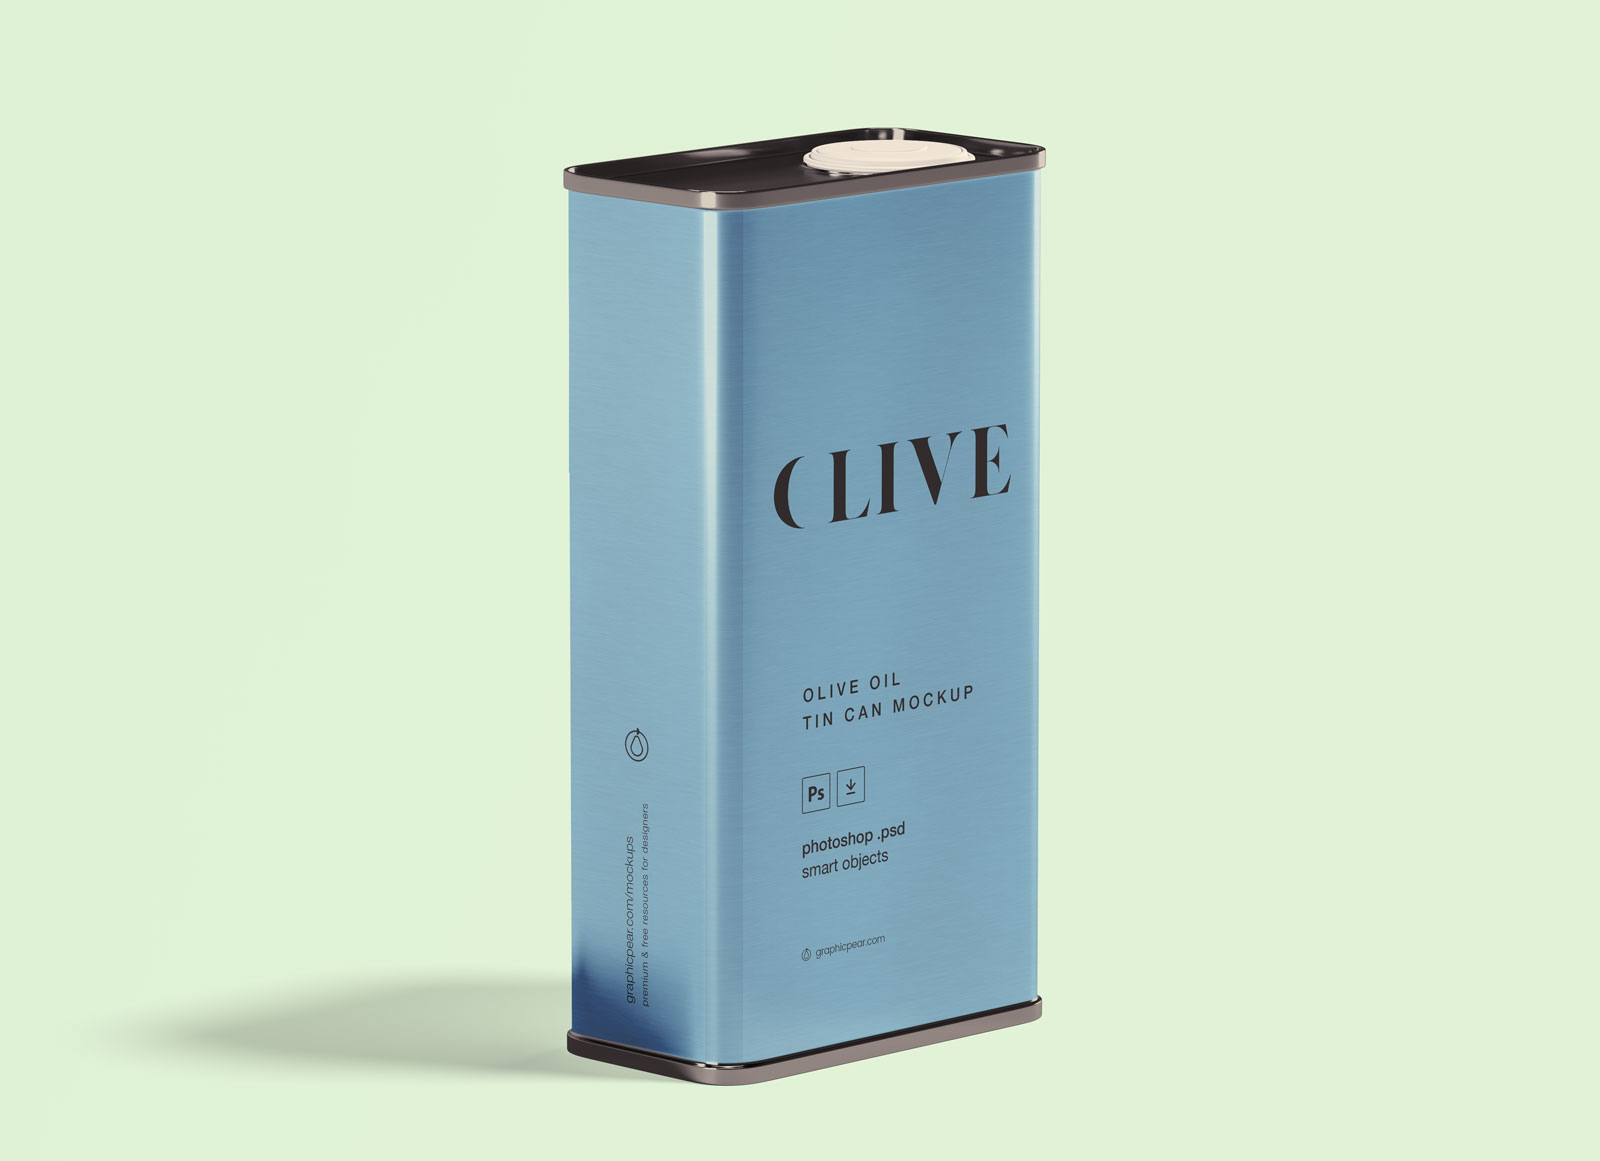 Free-Olive-Oil-Tin-Can-Mockup-PSD-2